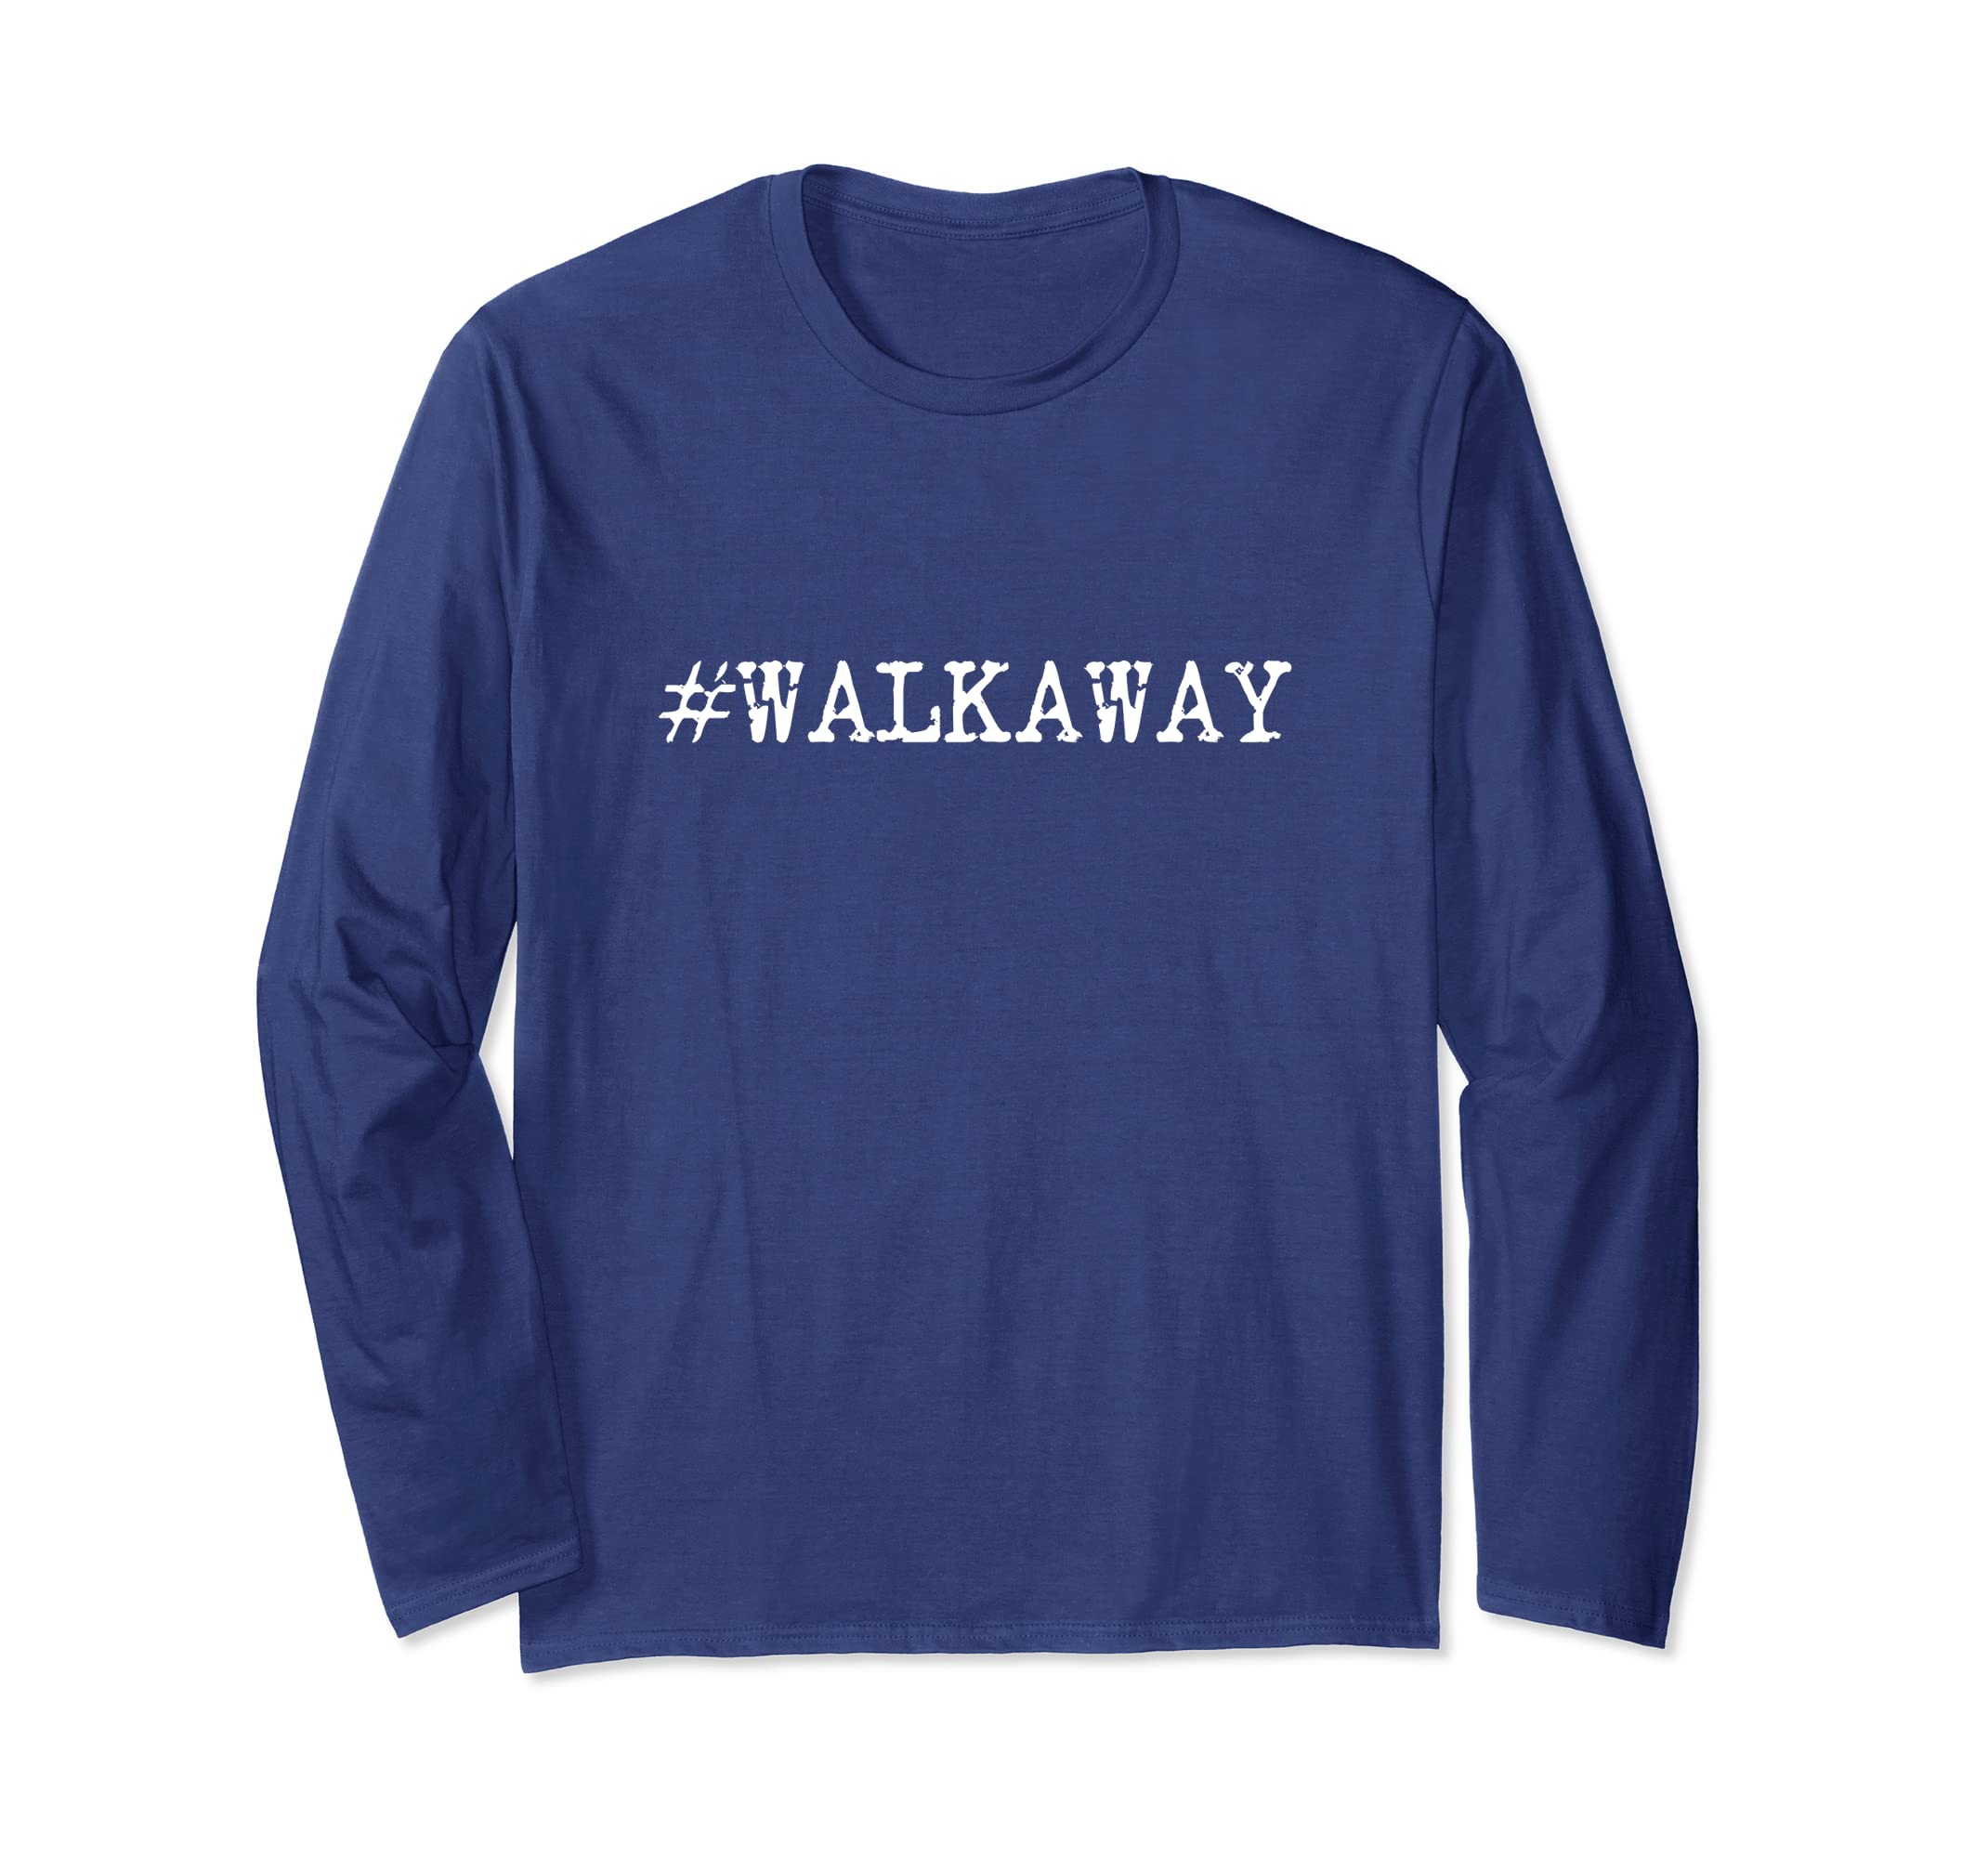 #Walkaway Long Sleeve Shirt - Typewriter Lettering-mt